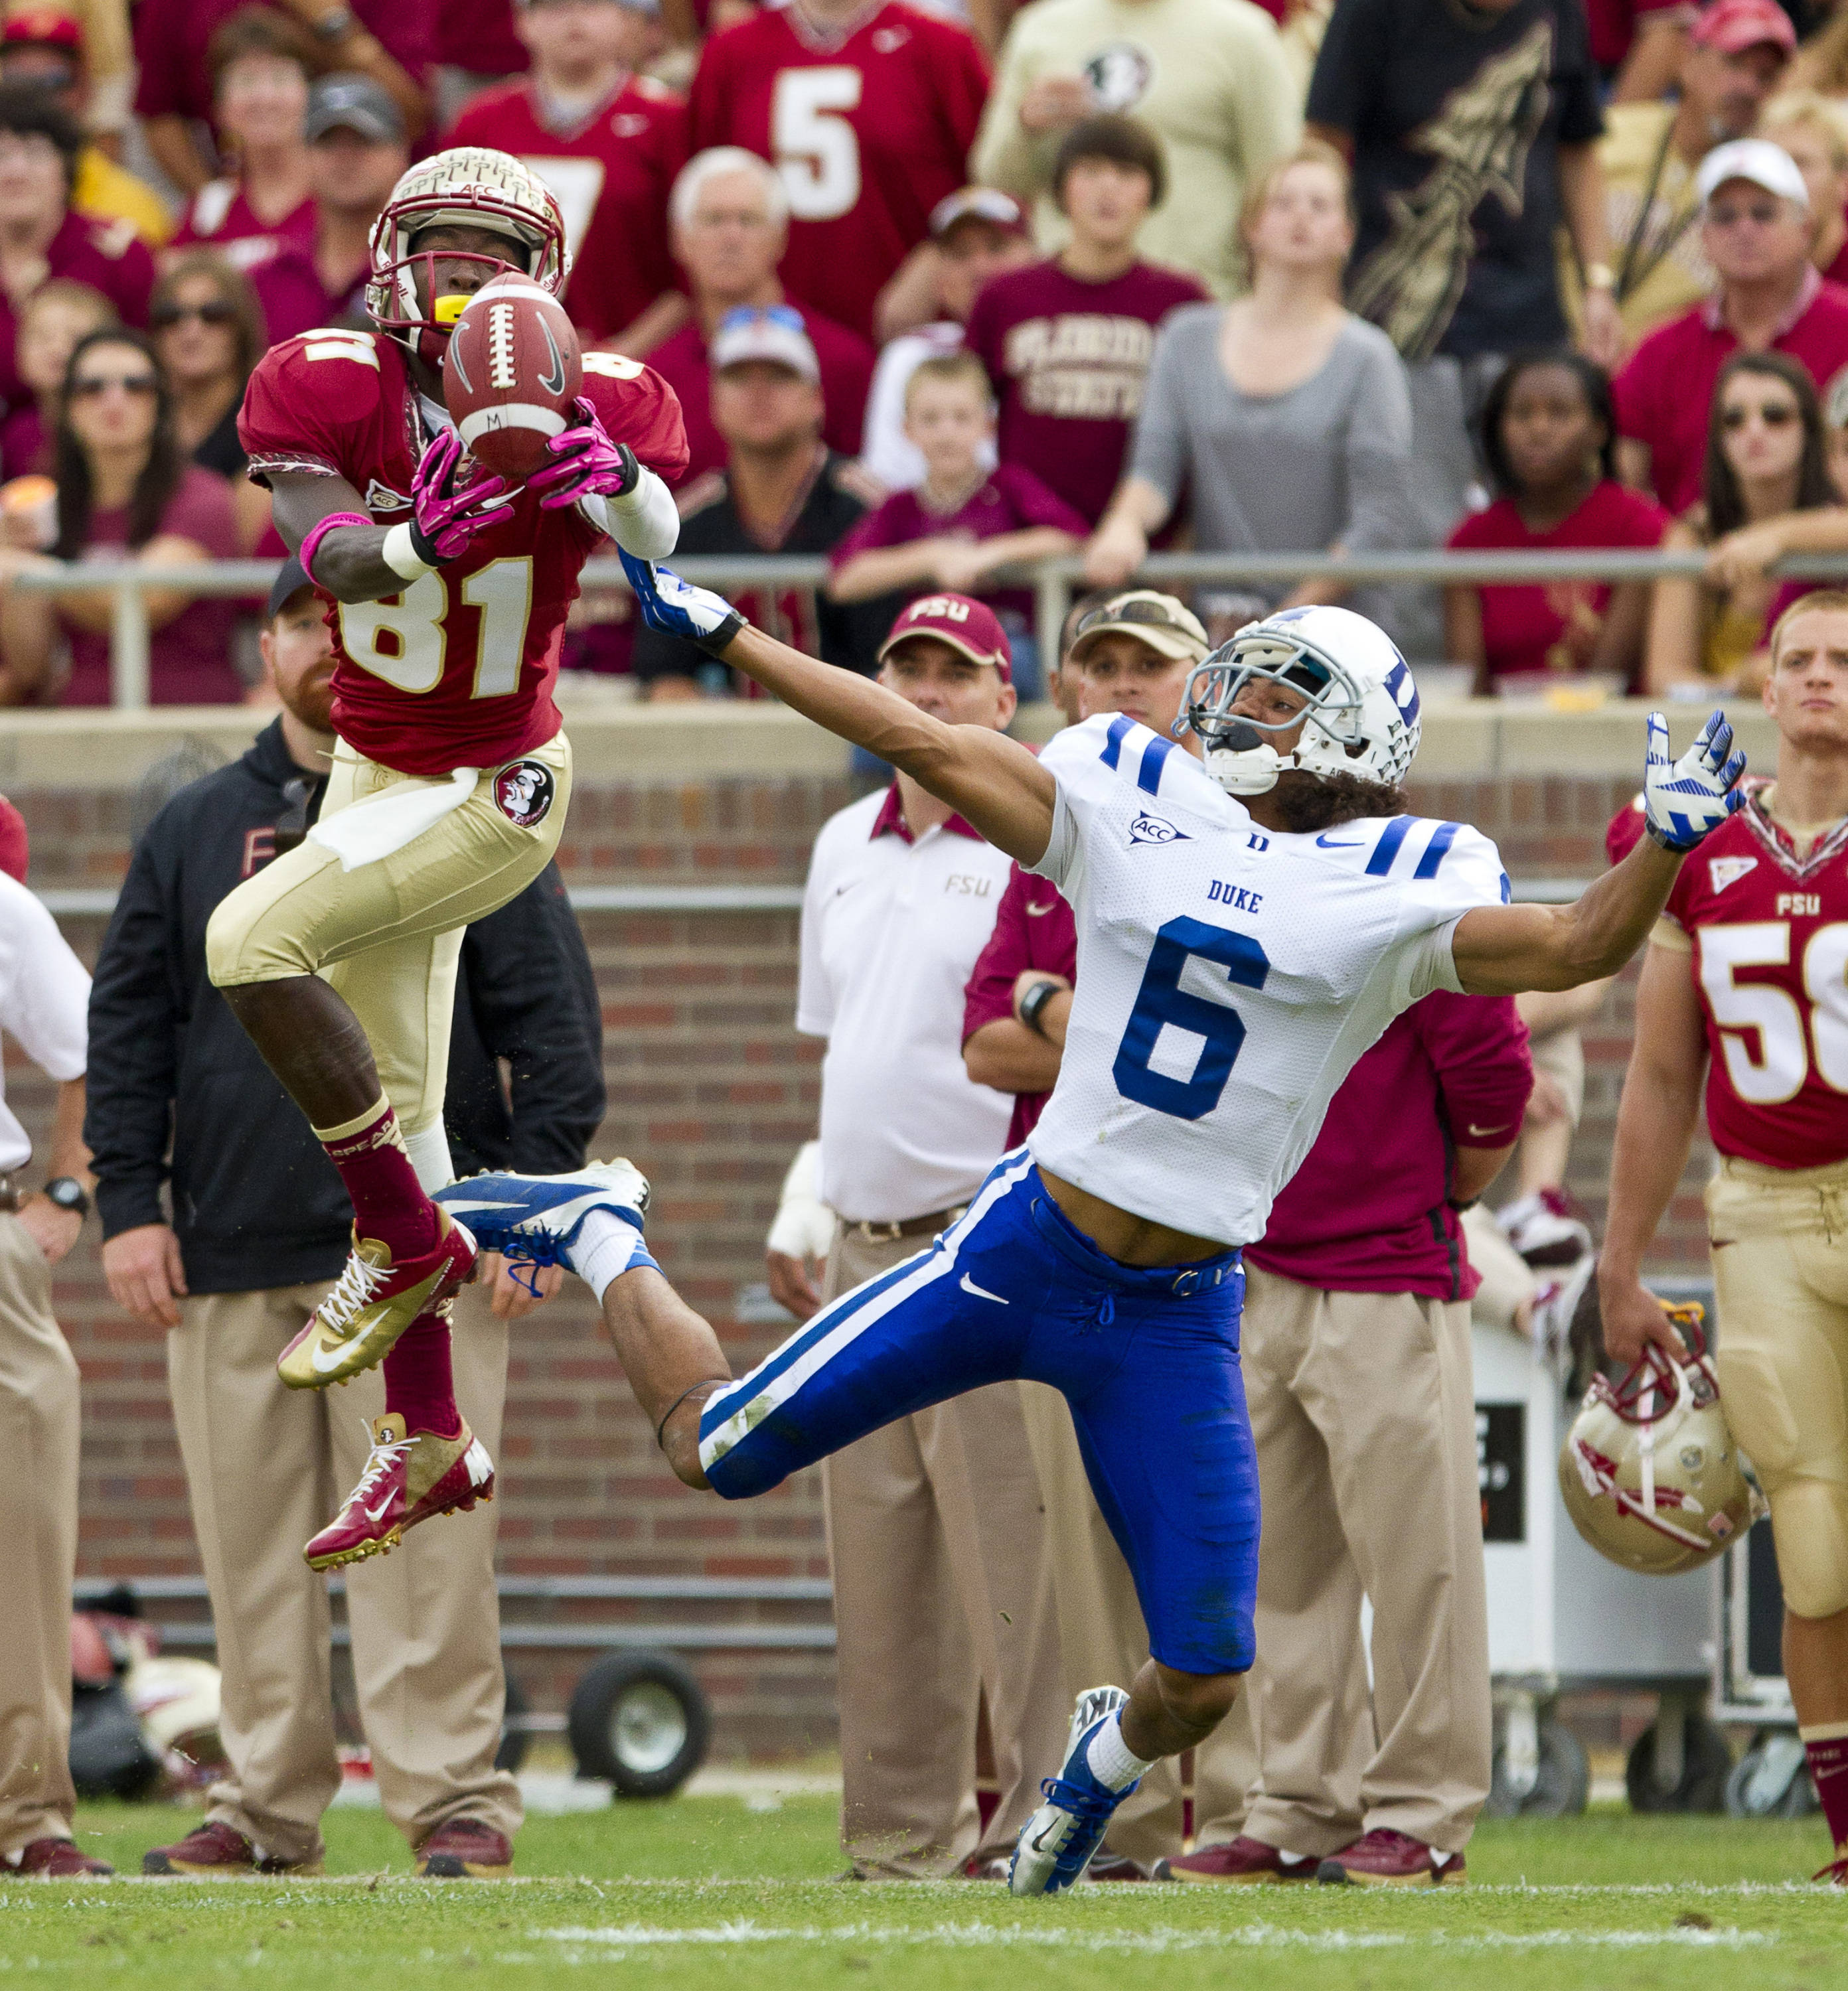 Kenny Shaw (81) reaches for a ball during FSU's 48-7 victory over Duke on October 27, 2012 in Tallahassee, Fla.